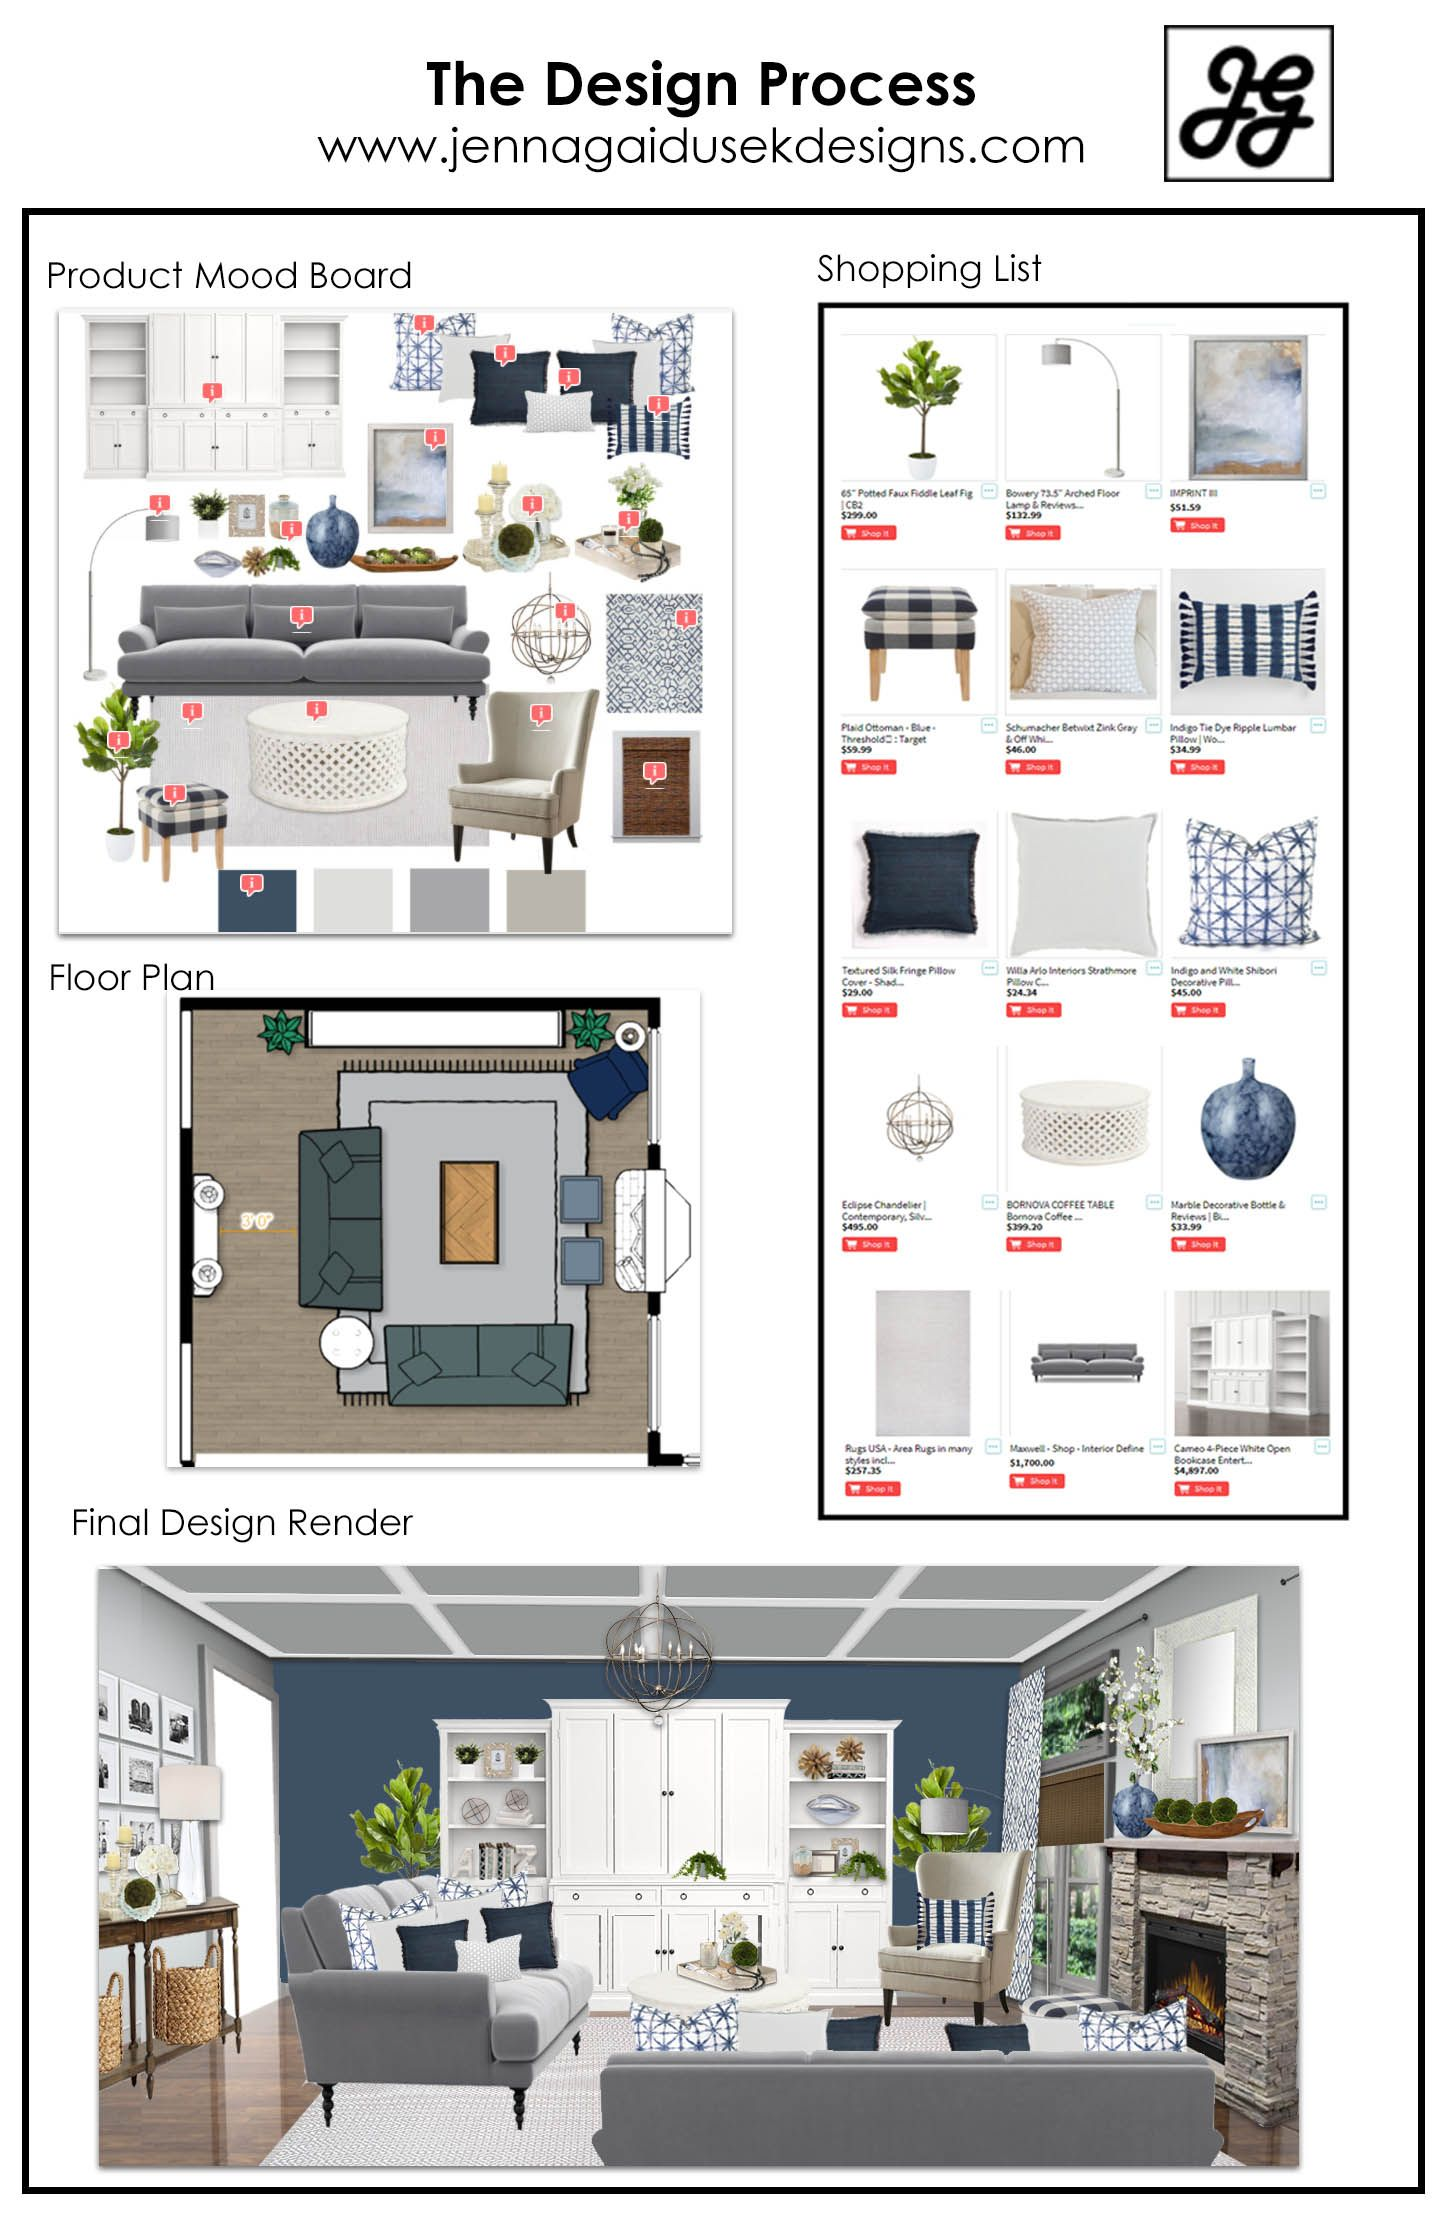 Online Interior Design Full Design Package From The Concept Board To The Floor Interior Design Presentation Online Interior Design Interior Design Mood Board